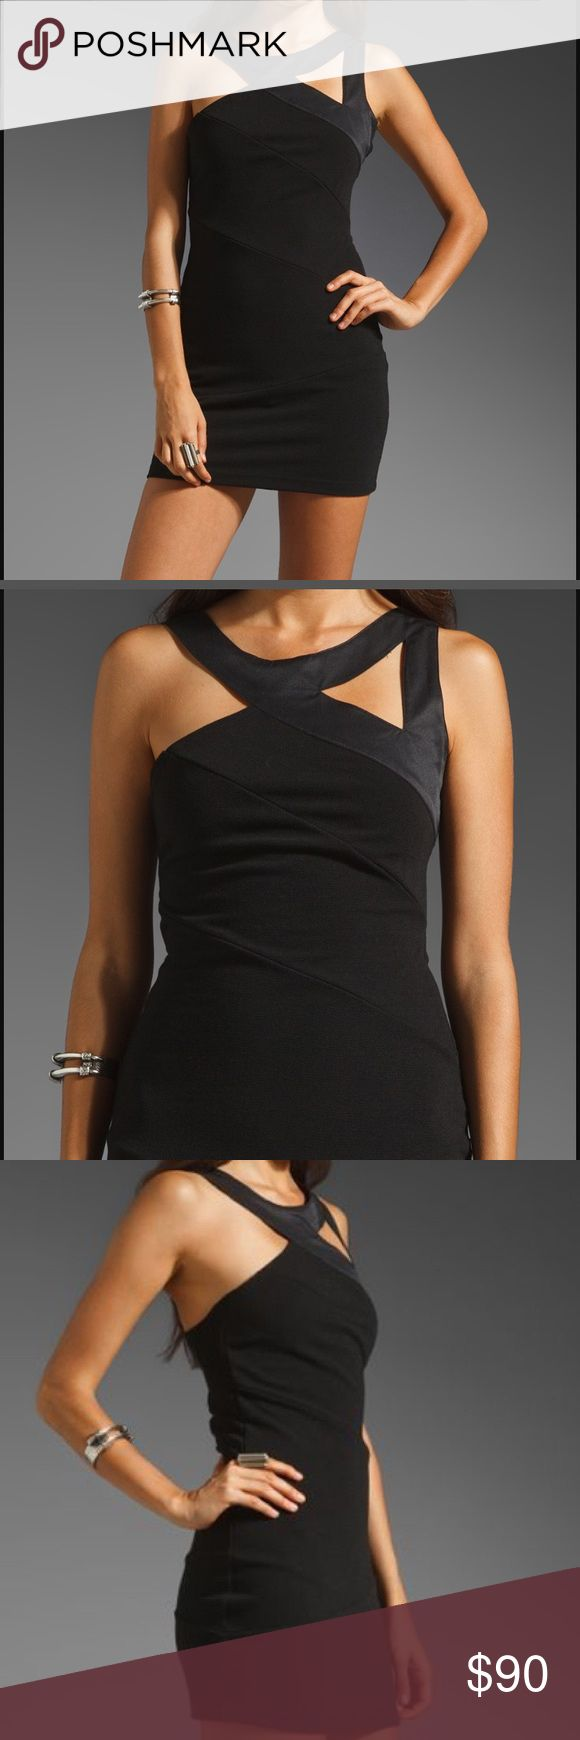 Finders keepers Black bondage dress NWT Finders Keepers Lets Hang On Black Body Con Dress  Size Small Armpit to Armpit: 15.5 inches  Length: 31 inches  Dress has Stretch  Retail: $121.     Open to reasonable offers 🤗 Finders Keepers Dresses Mini